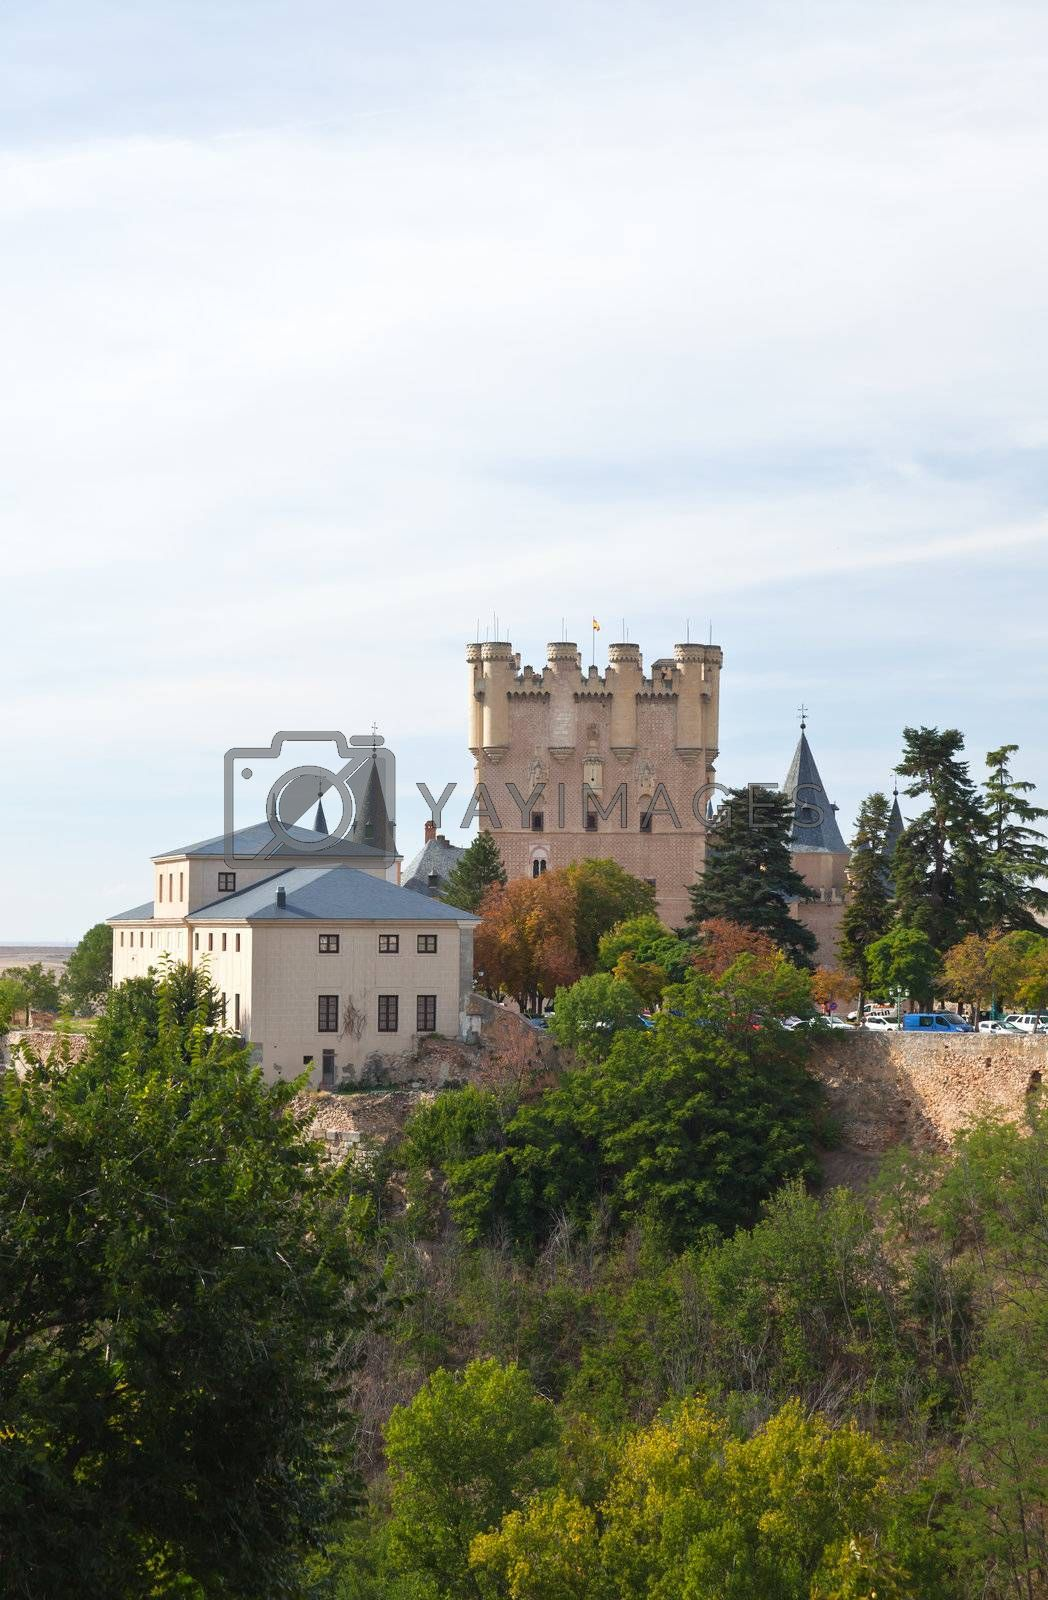 Royalty free image of Alcazar fortress of the Segovia city by gary718